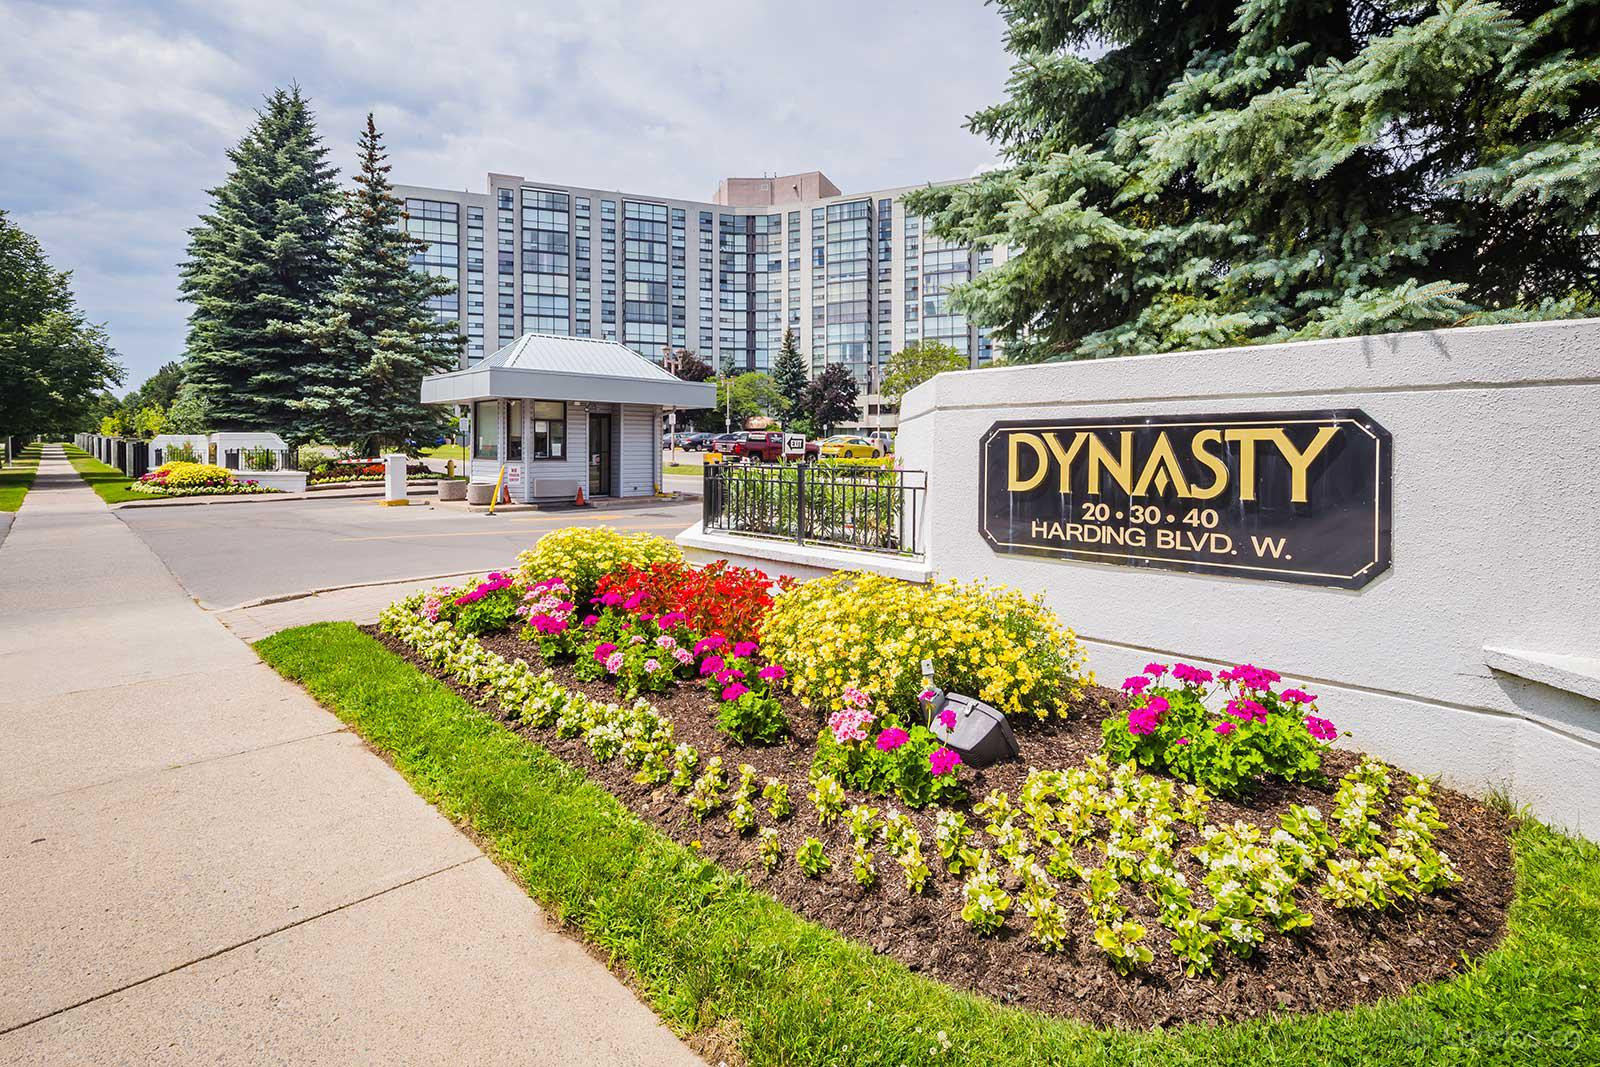 The Dynasty Ⅲ at 20 Harding Blvd, Richmond Hill 1